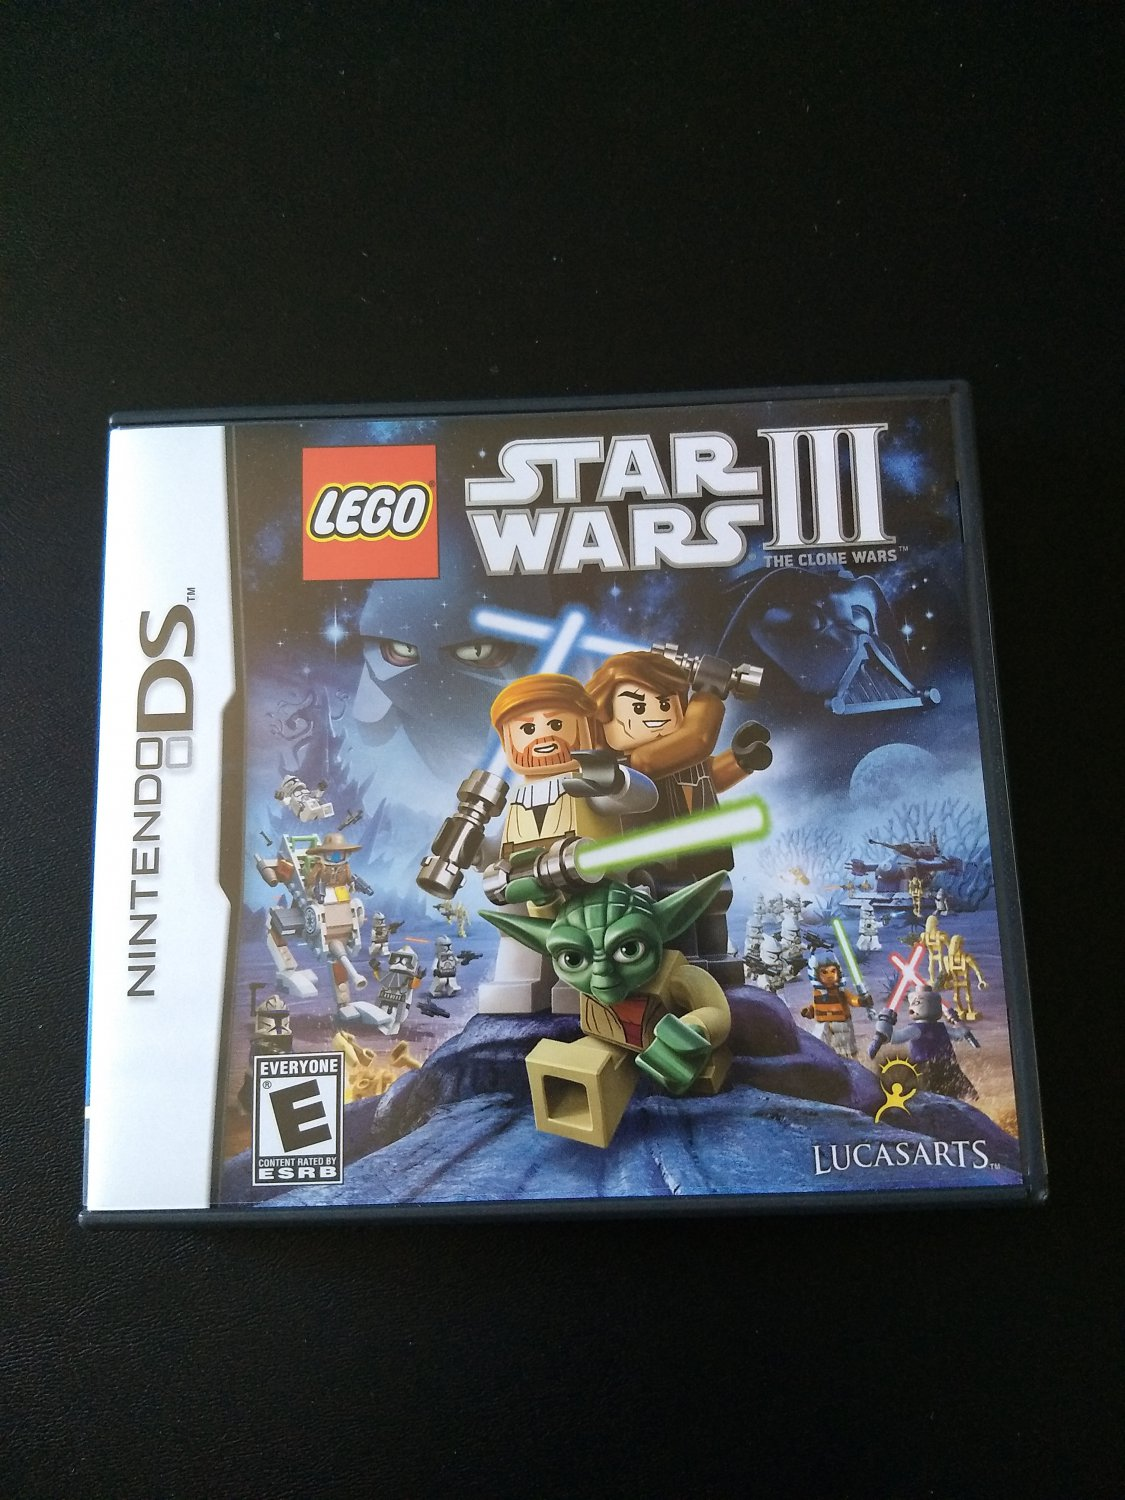 Lego Star Wars III DS (Case and Manual Only!)